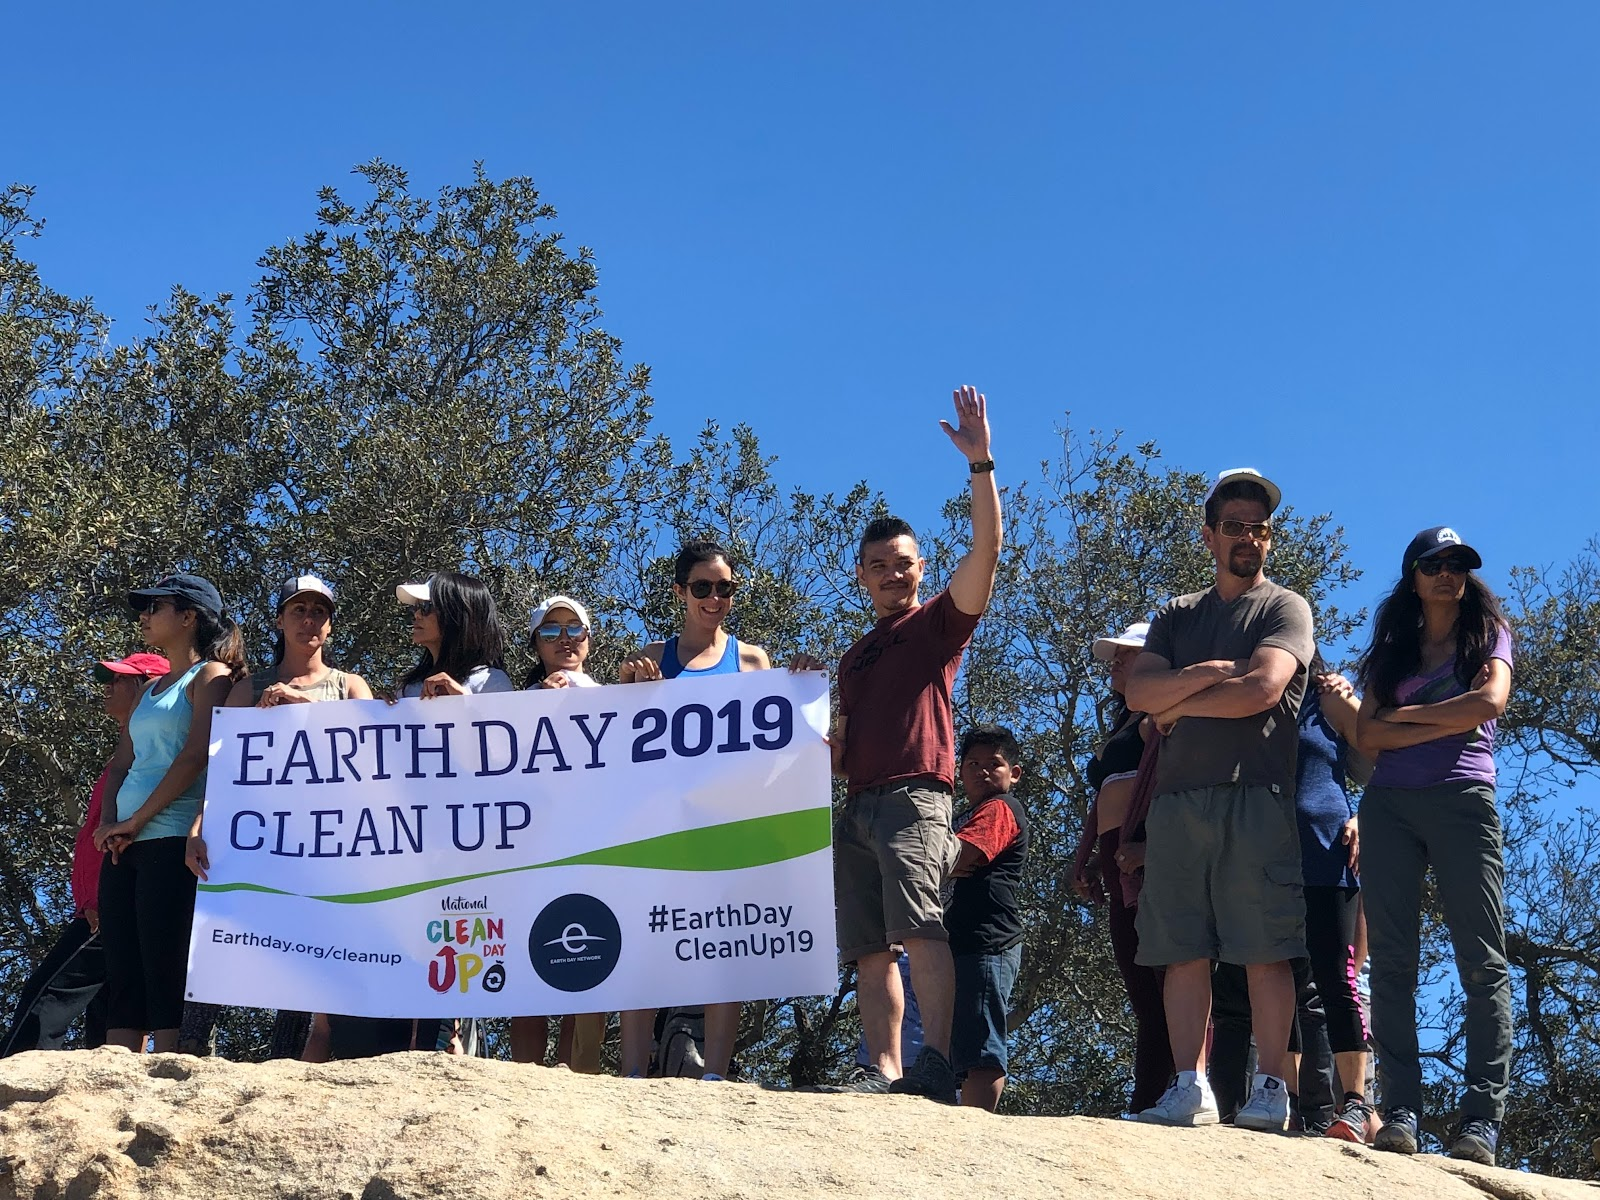 Earth Day is a great time to get out and volunteer!